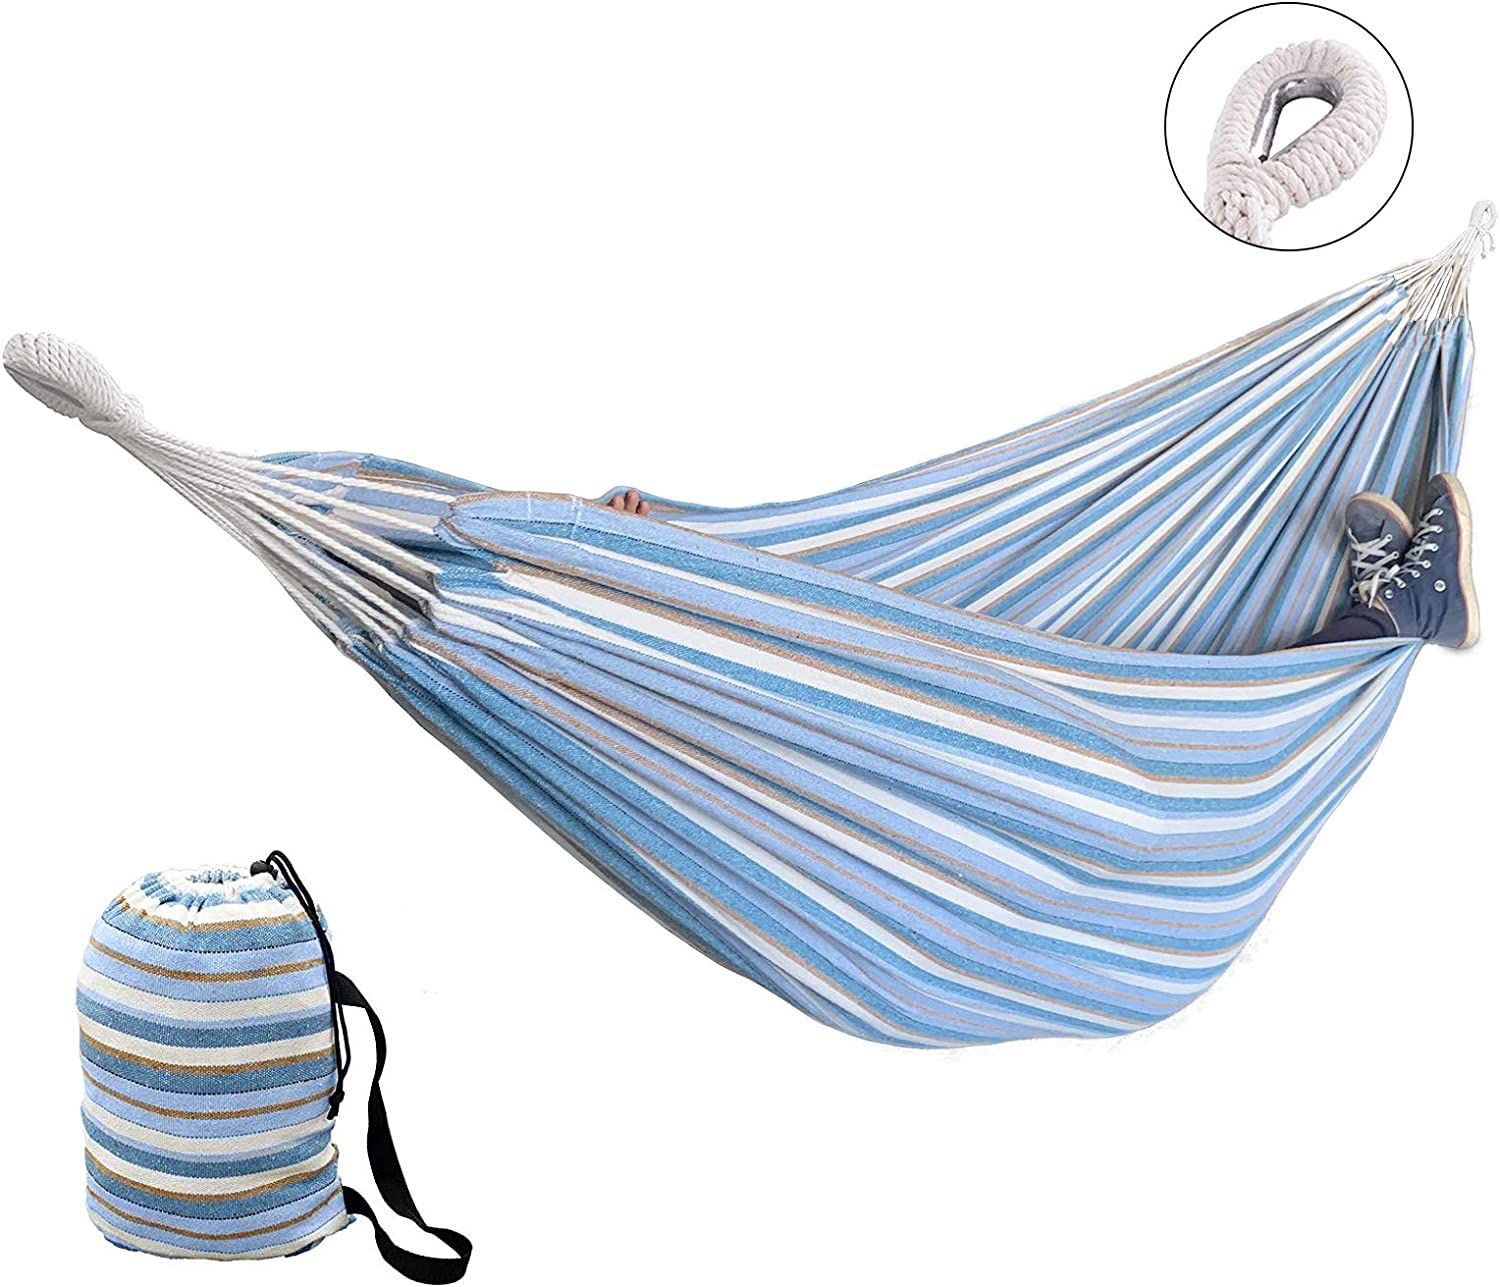 LOVE STORY 10FT Single Multipurpose Soft Woven Brazilian Camping Hammock Includes Portable Bag, for Garden Backyard Patio Outdoor and Indoor Use, Striped Blue